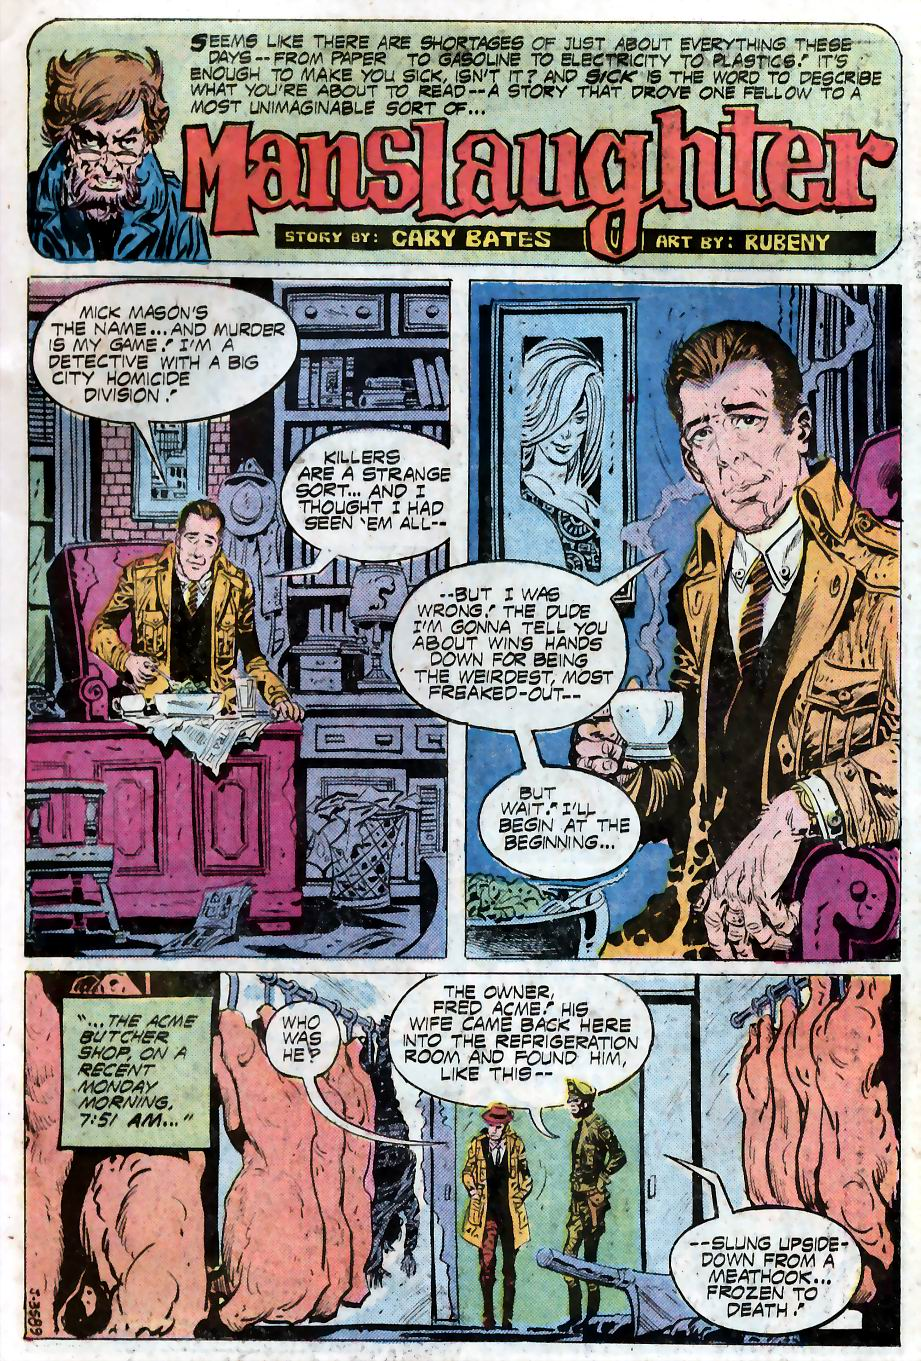 House of Mystery (1951) #240 Pg.9, written by Cary Bates with art from Ruben Yandoc.